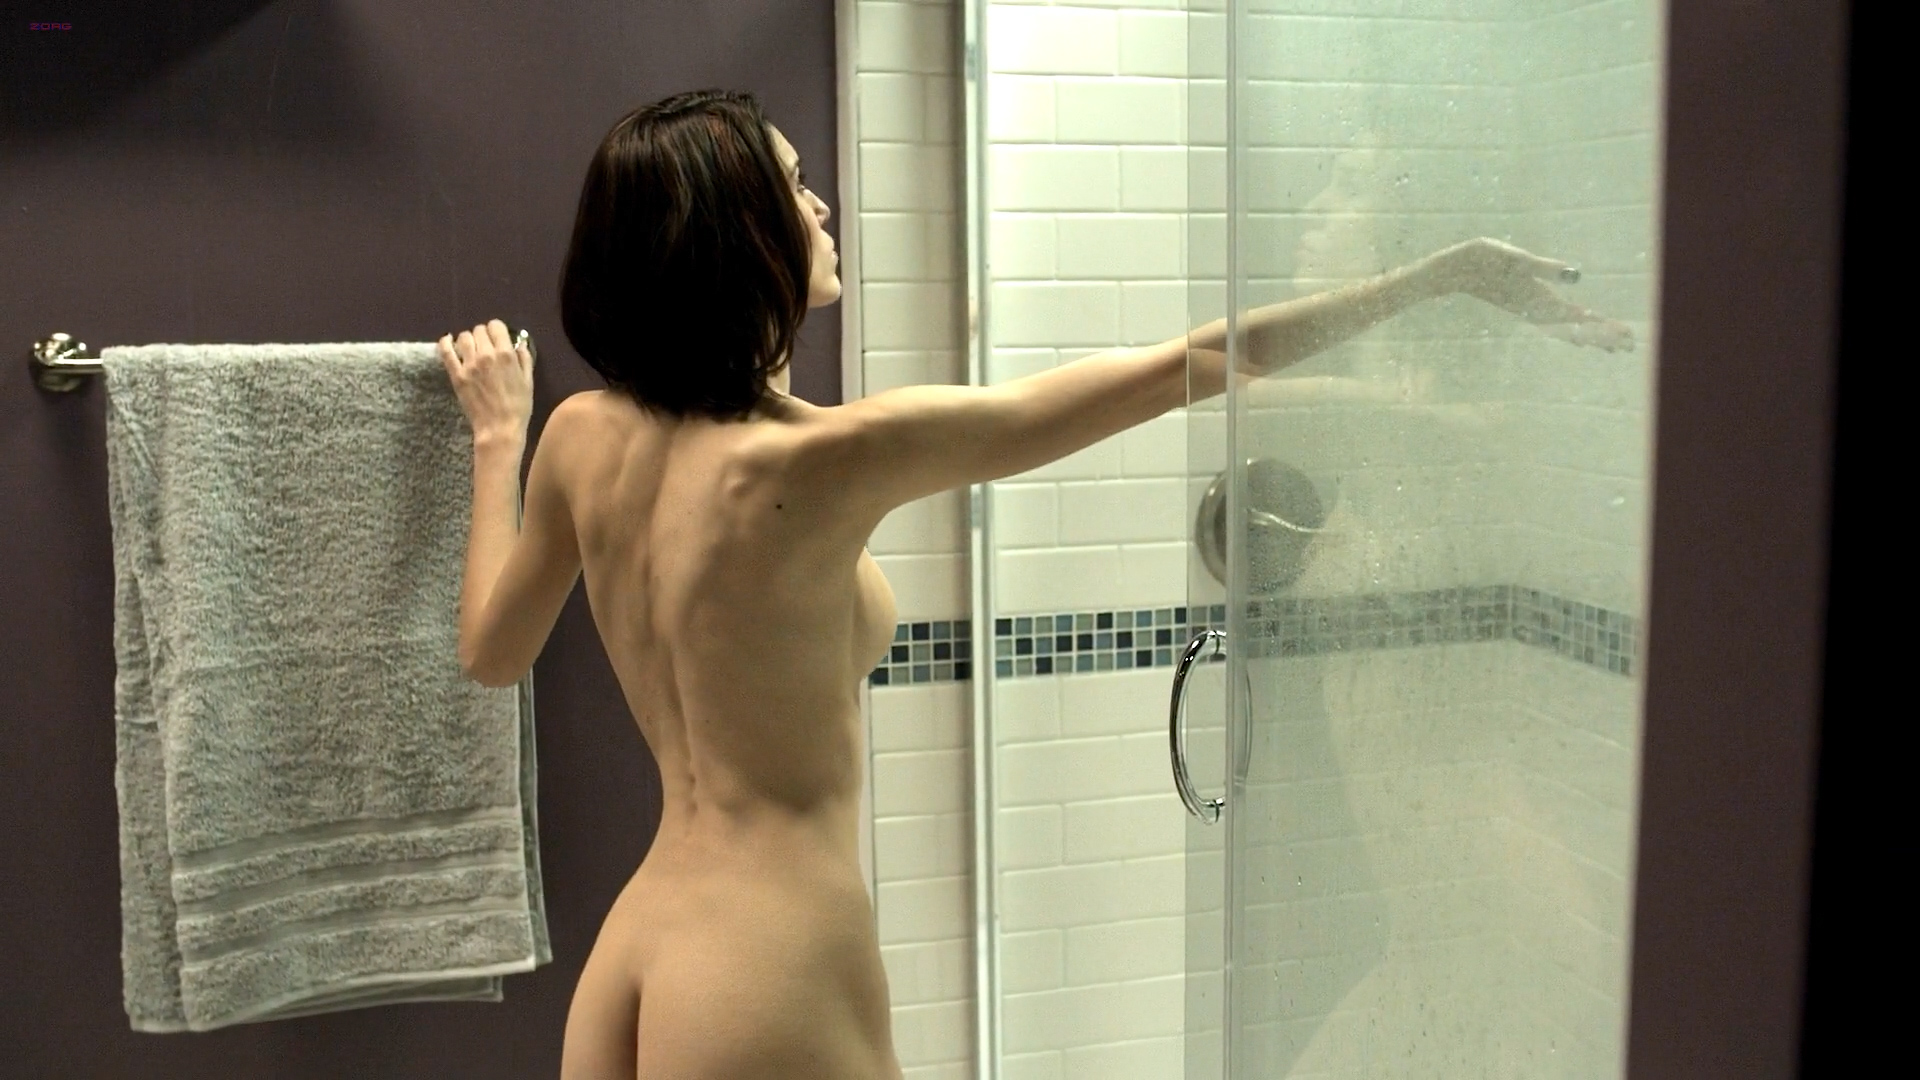 image Christy carlson romano nude boobs and butt in mirrors movie